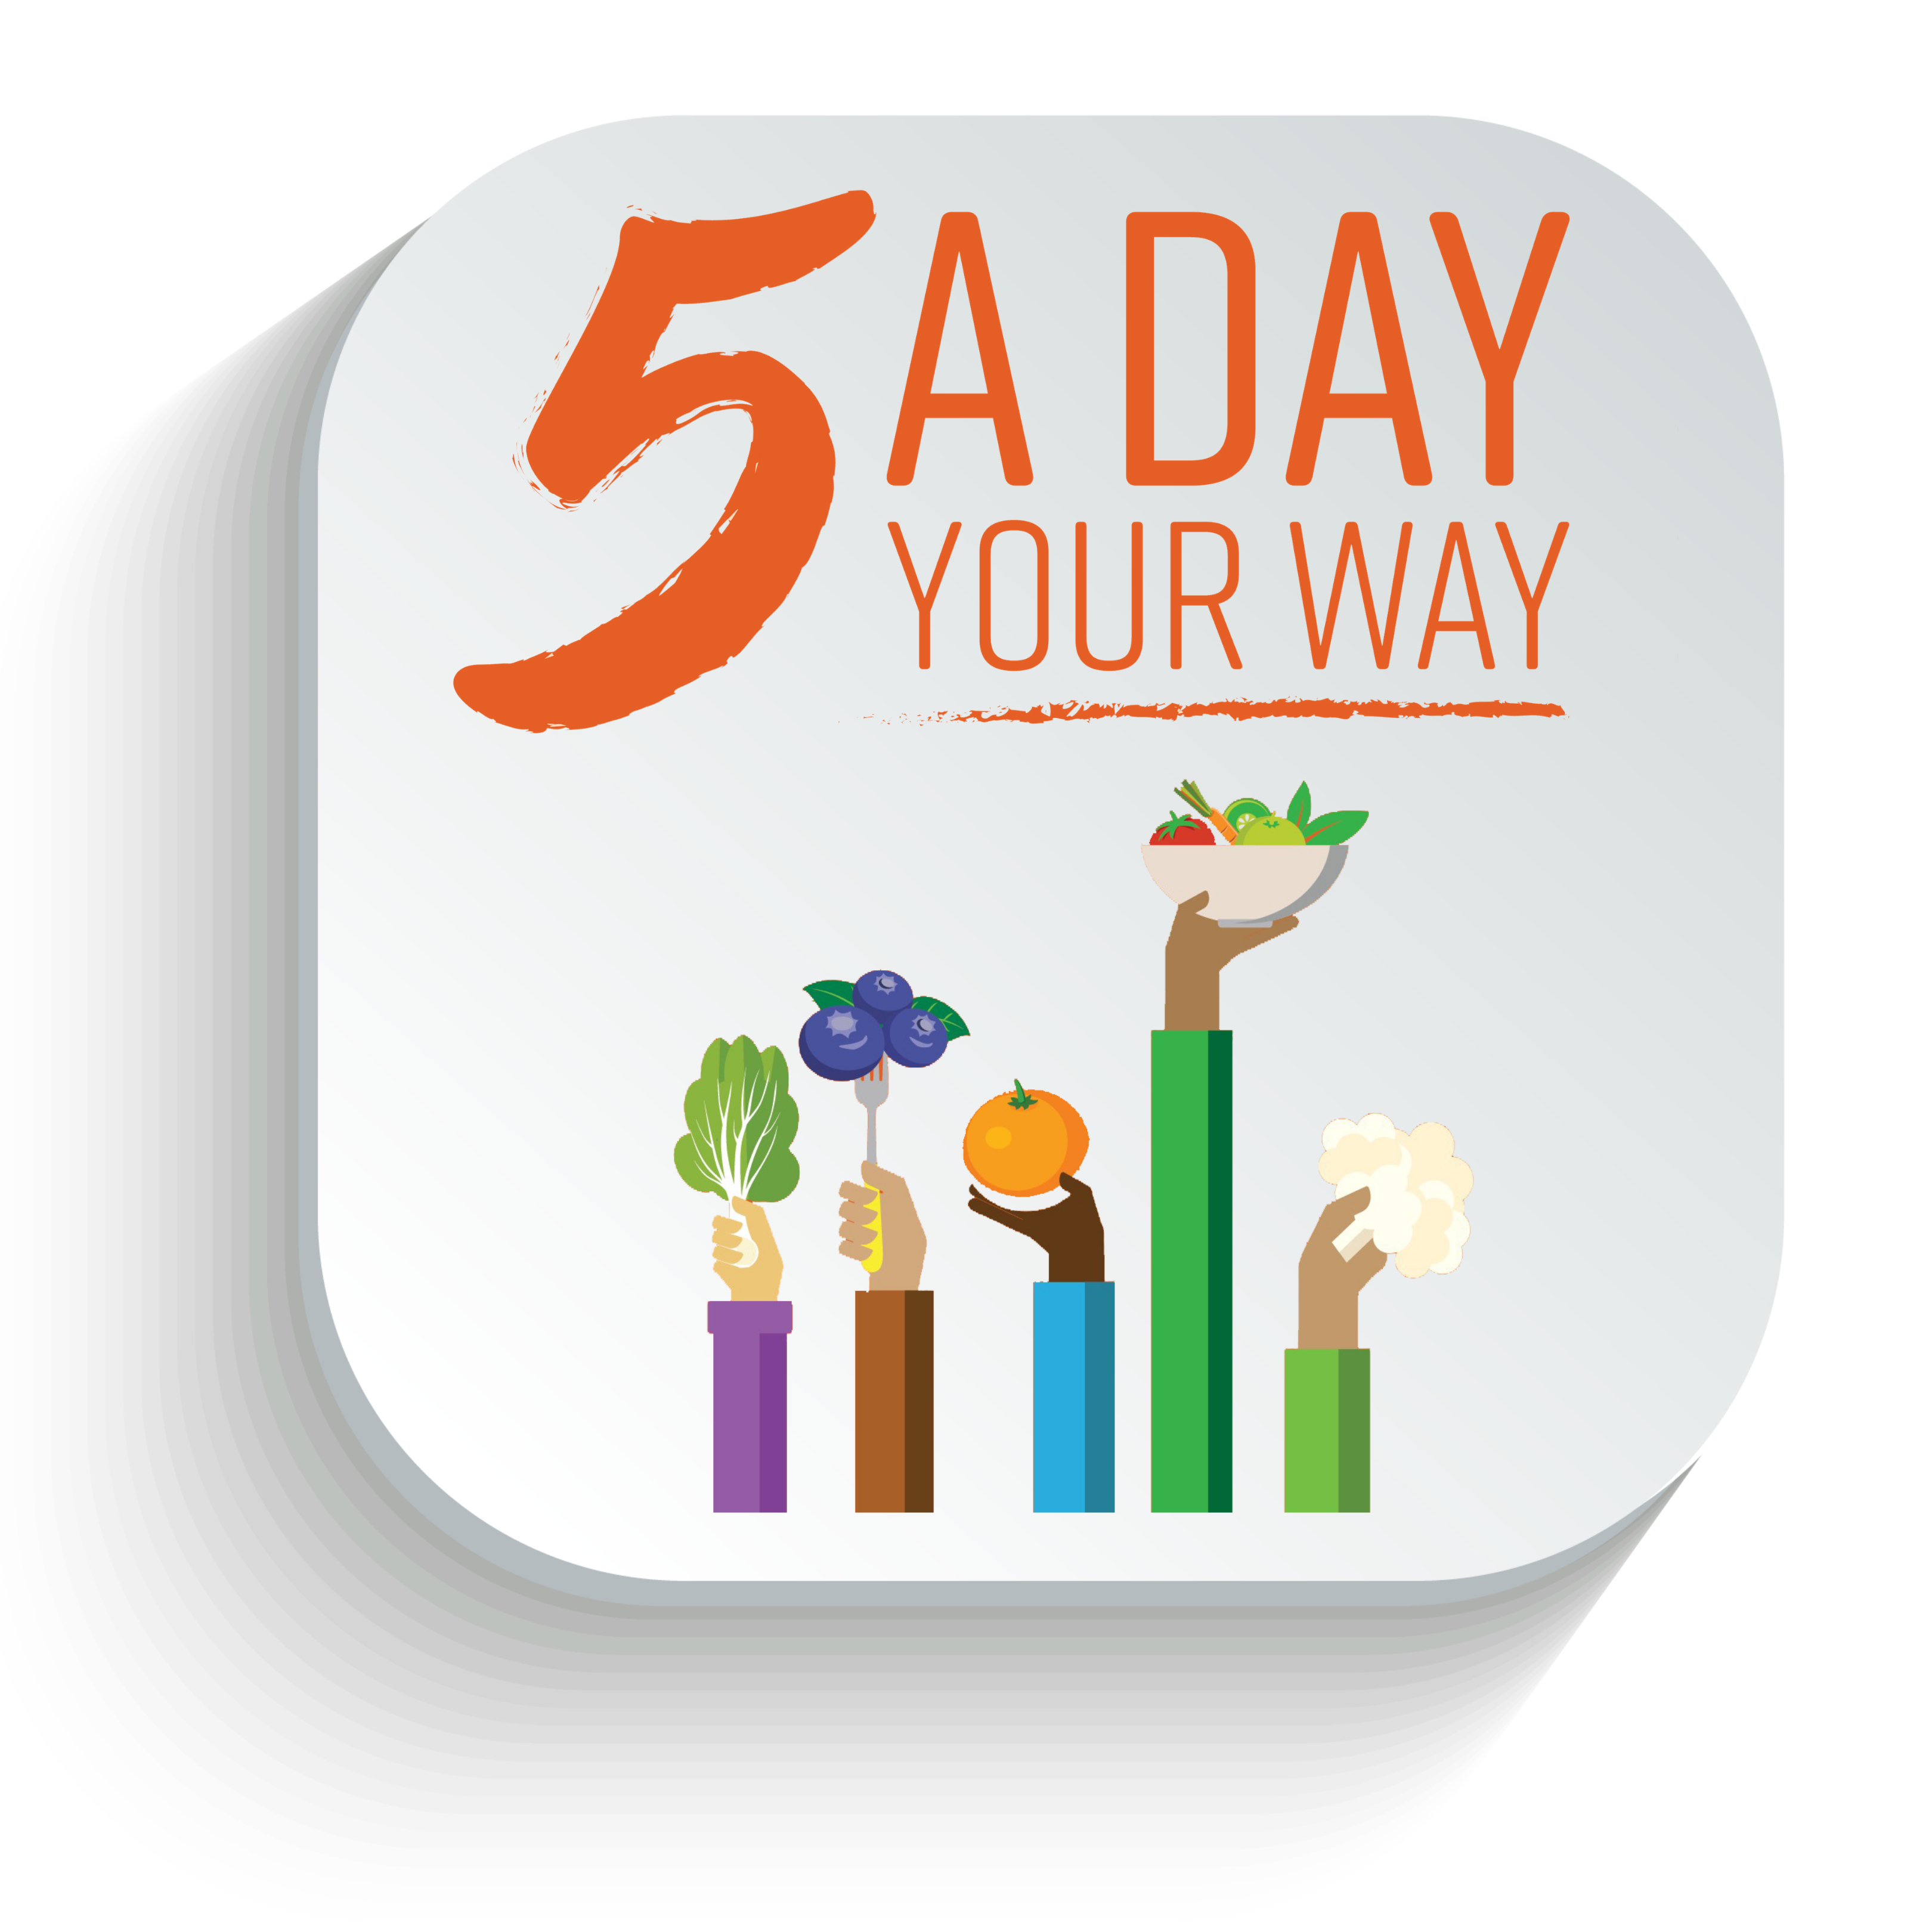 Eat Well - 5 A Day Your Way